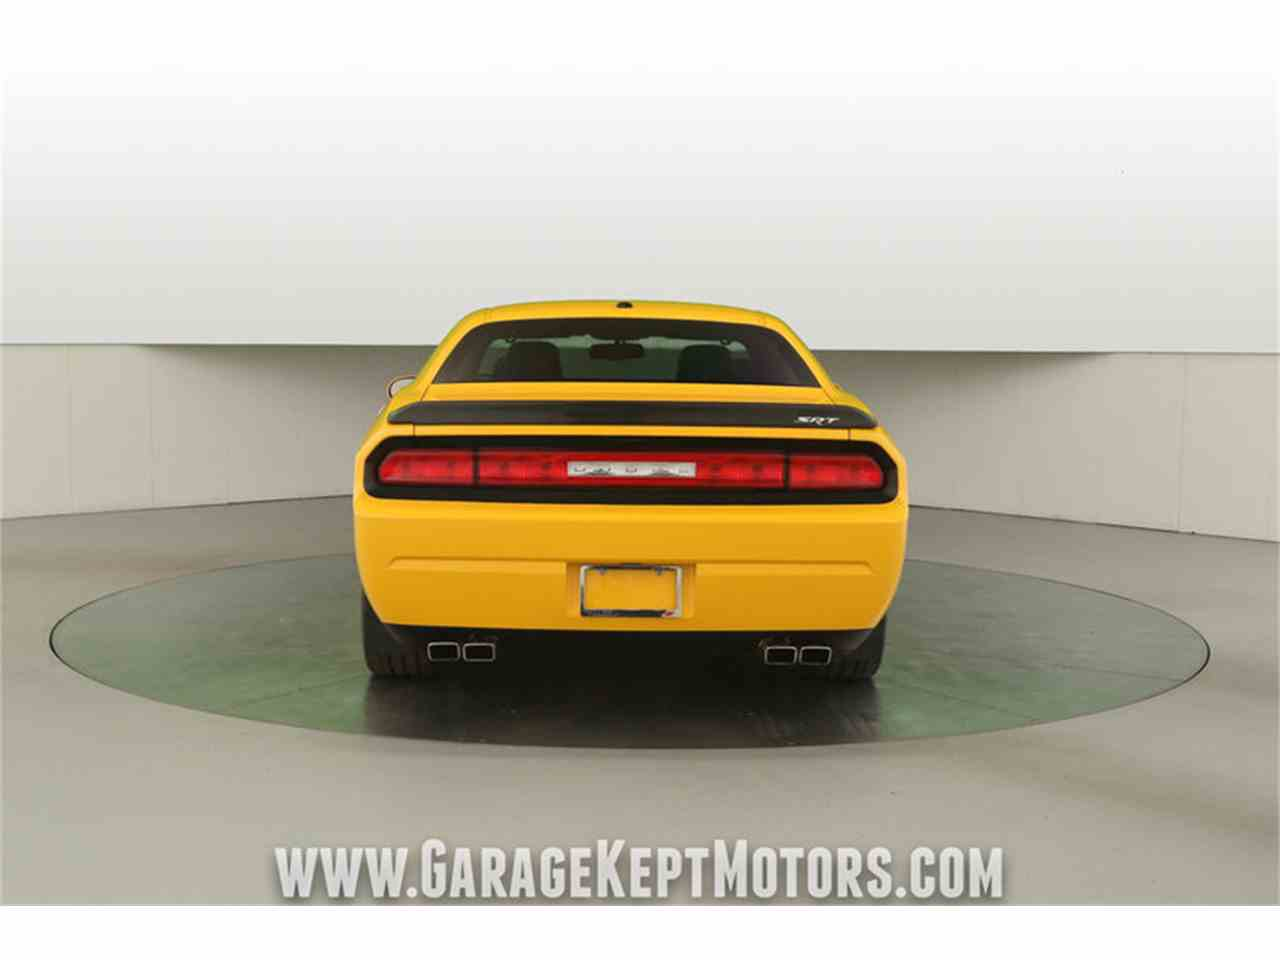 Large Picture of '12 Dodge Challenger SRT8 392 Yellow Jacket located in Michigan - MAXR